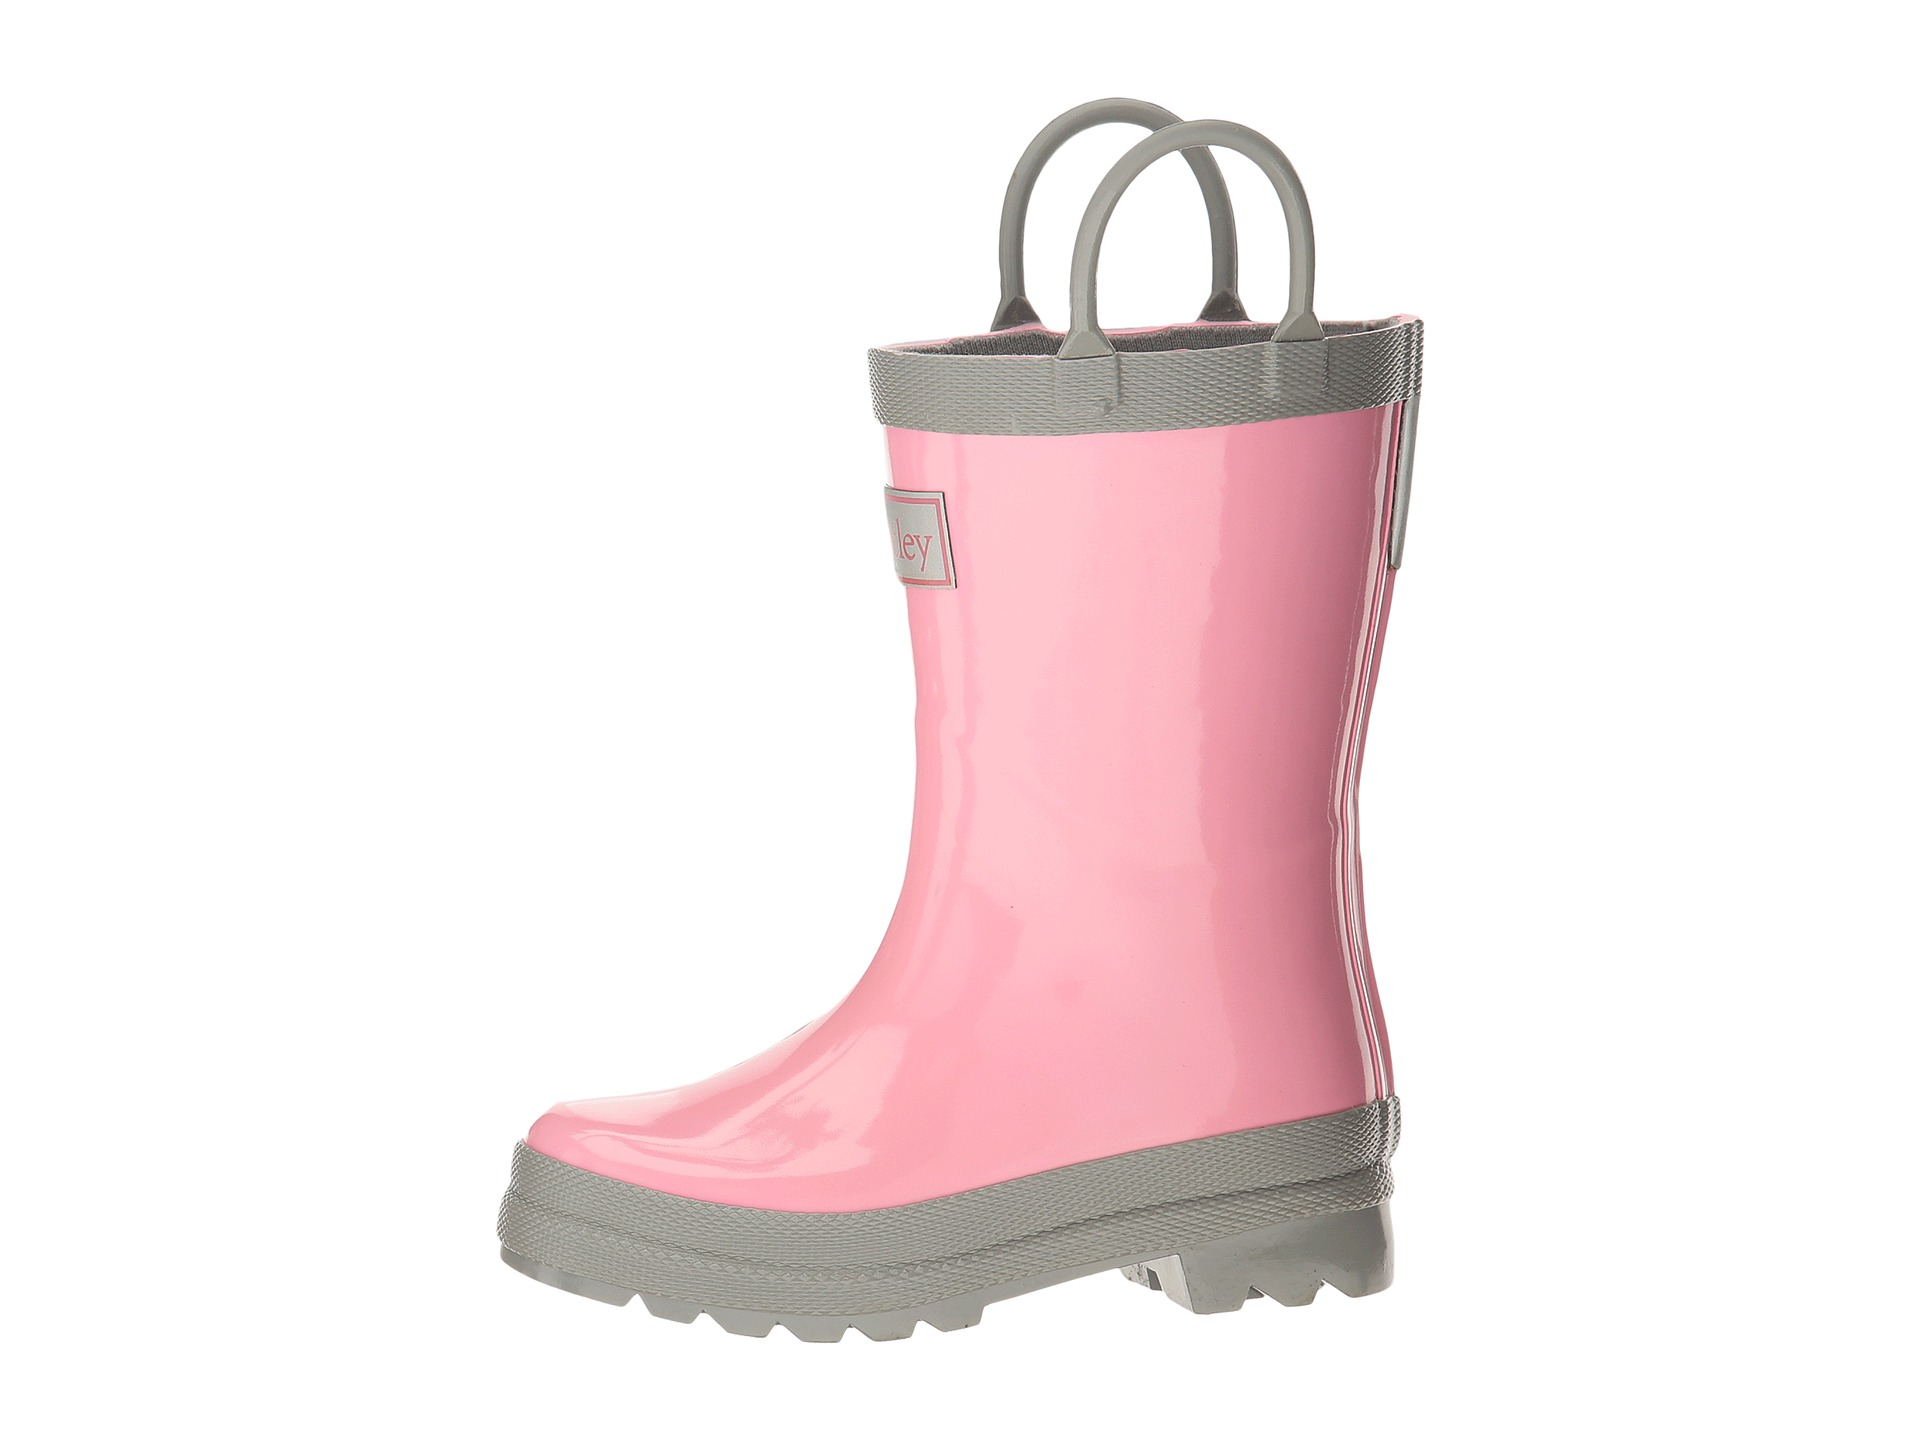 TODDLER GIRLS CARTER'S Viona Rain Boots Pink Multi Striped Toddlers Size 6 NEW* See more like this SPONSORED Outee Toddler Girls Boys Kids Rain Boots Lightweight Baby Red/Black/Blue/Purple.